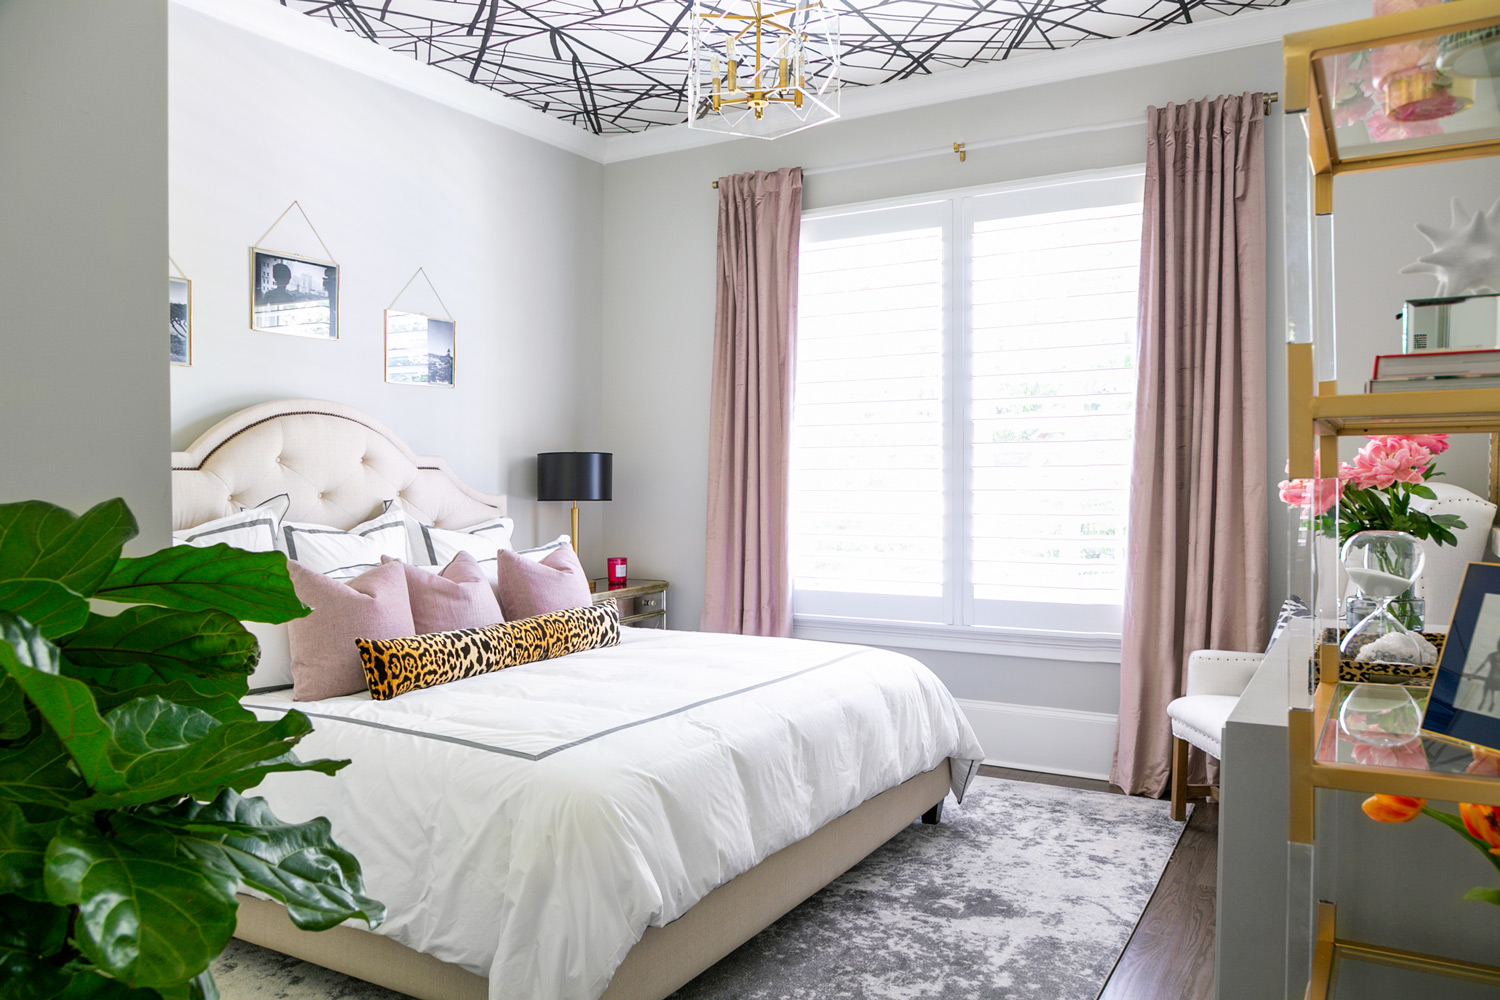 Guest bedroom with abstract wallpapered ceiling, brass lighting, and pink velvet decor